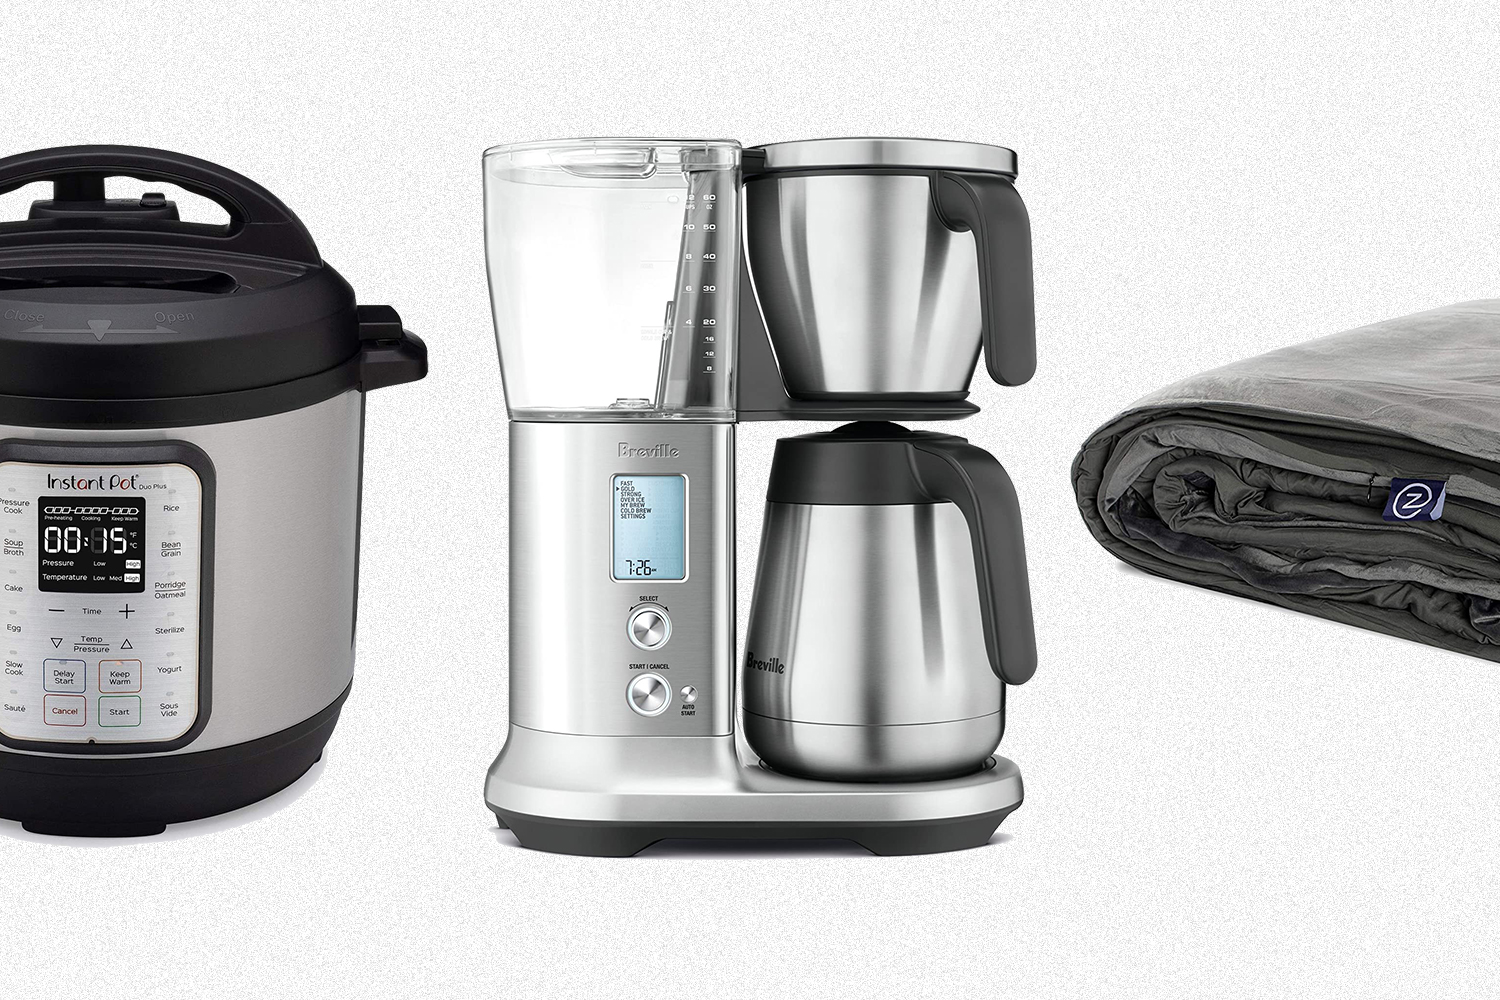 An Instant Pot, Breville coffee brewer and Gravity weighted blanket all on sale for Amazon Prime Day